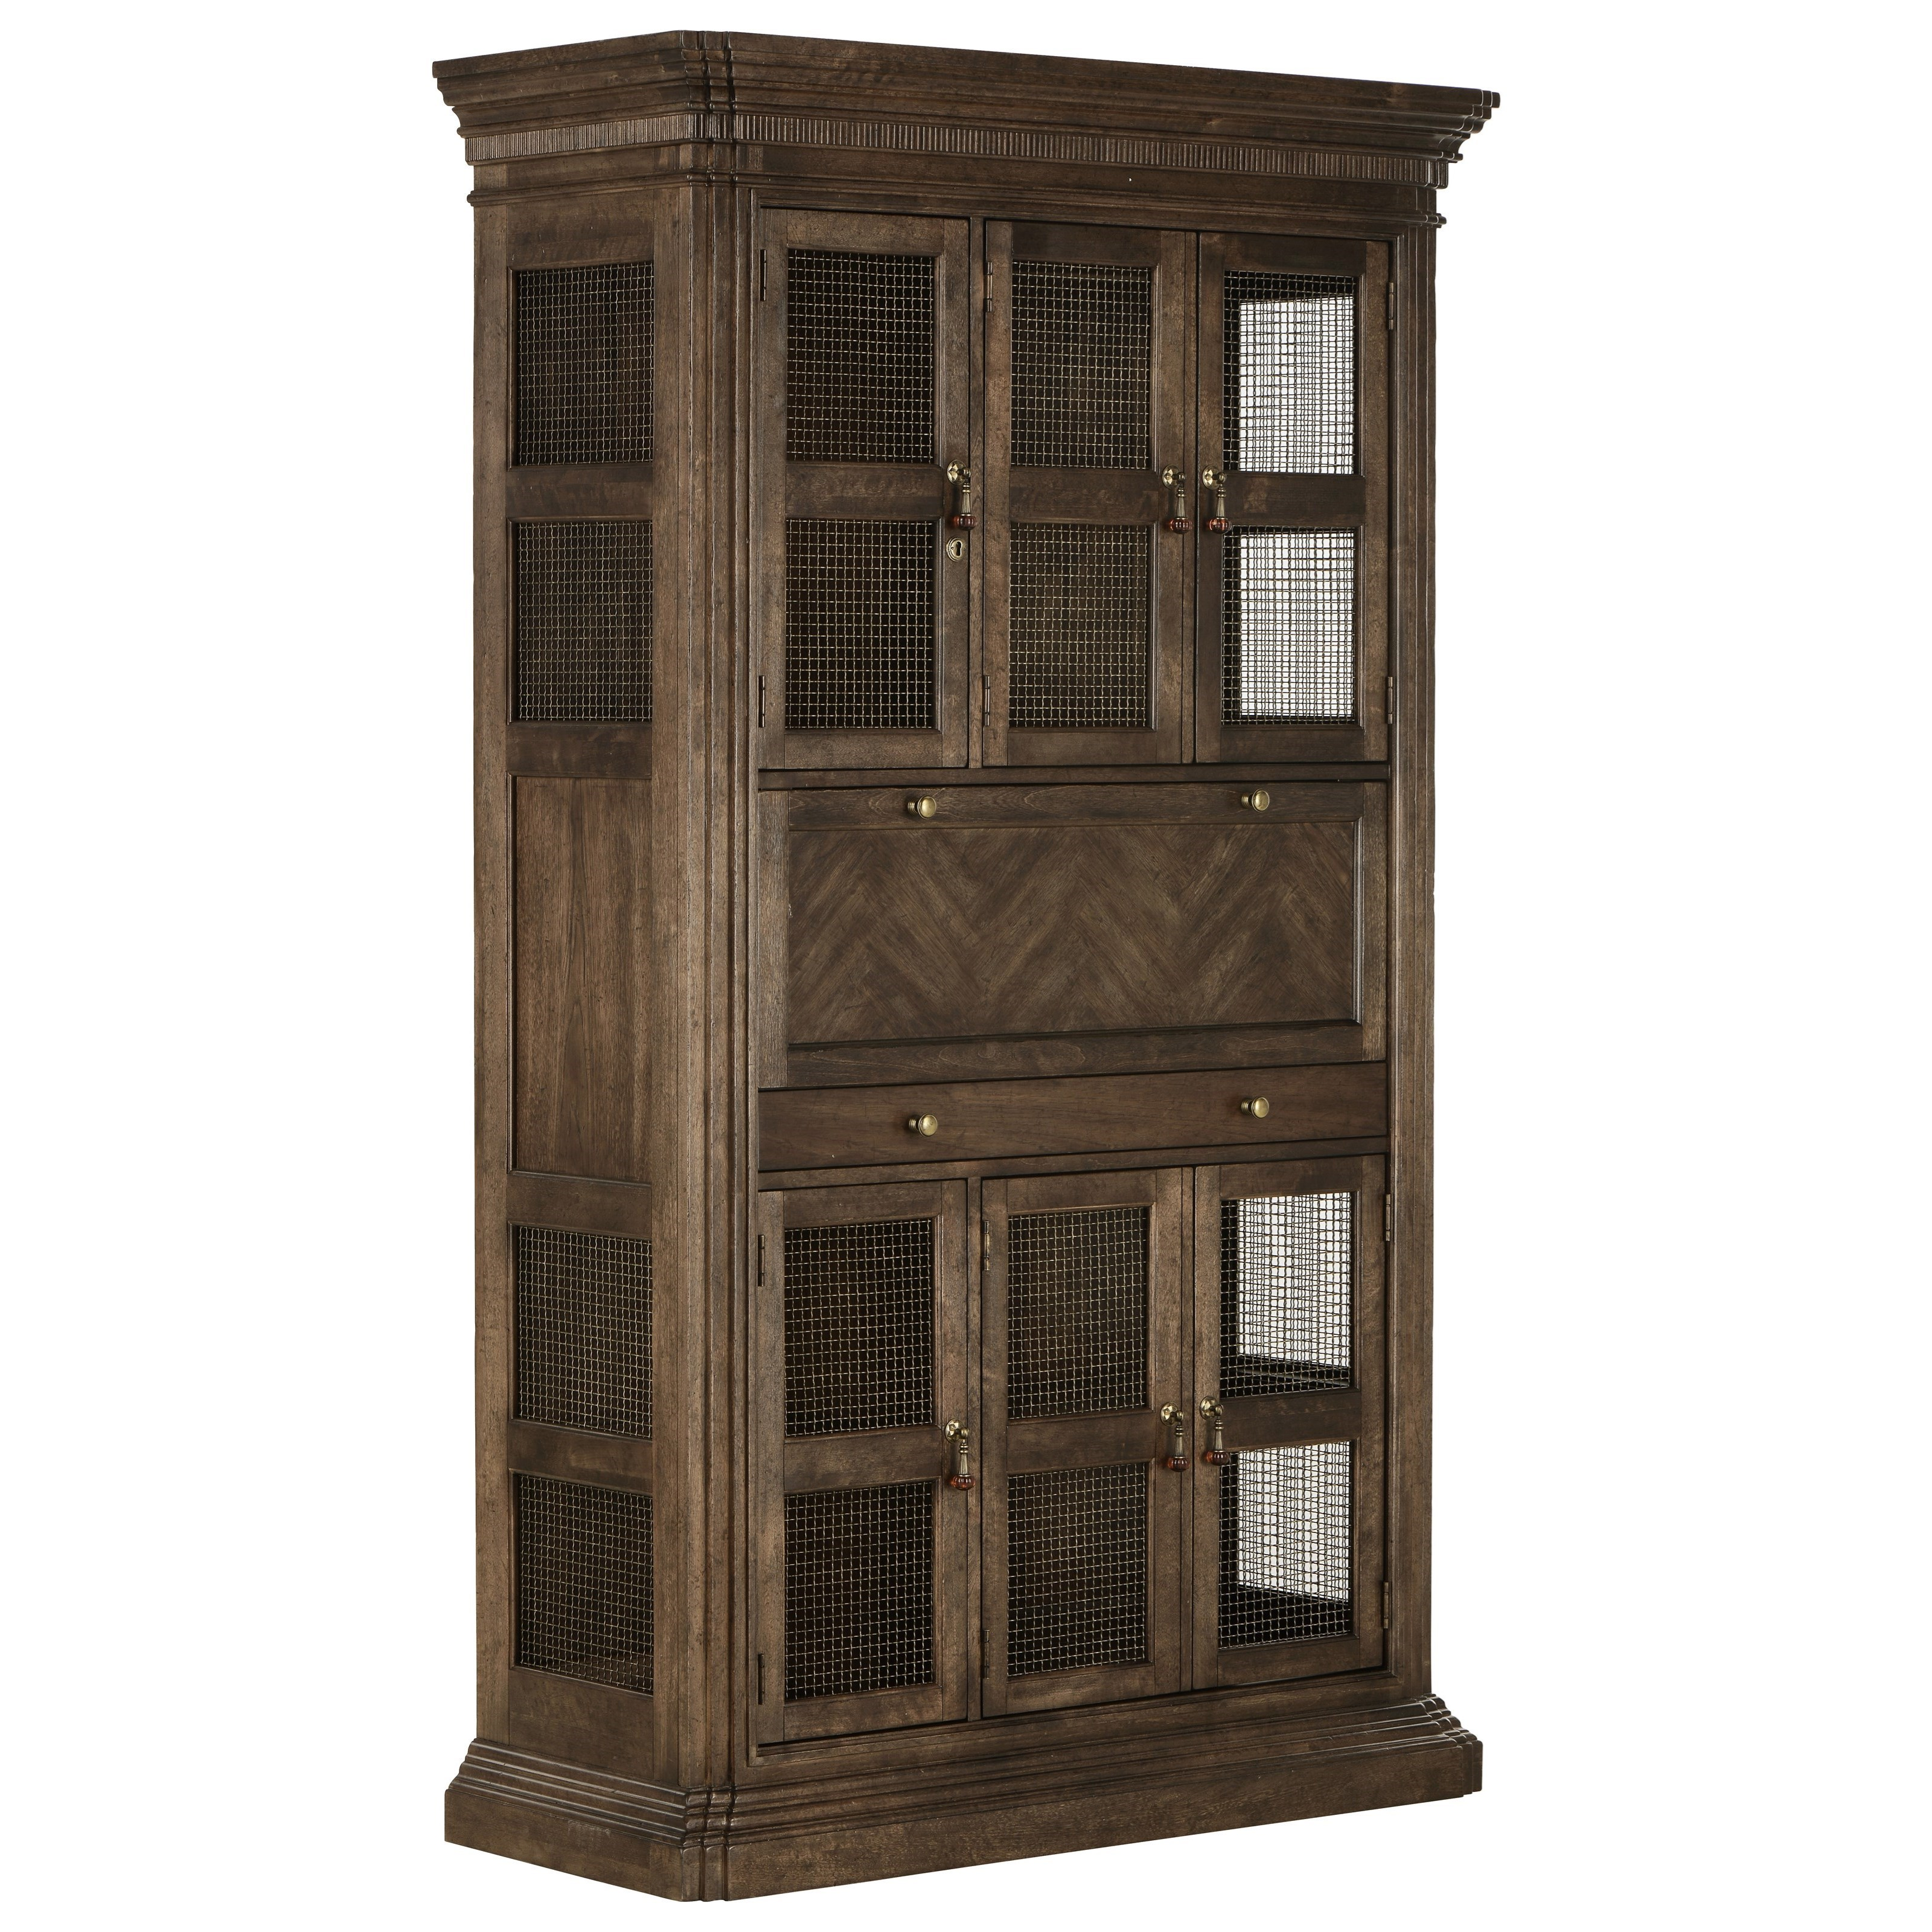 American Chapter Kentucky Bourbon Locker by A.R.T. Furniture Inc at Home Collections Furniture